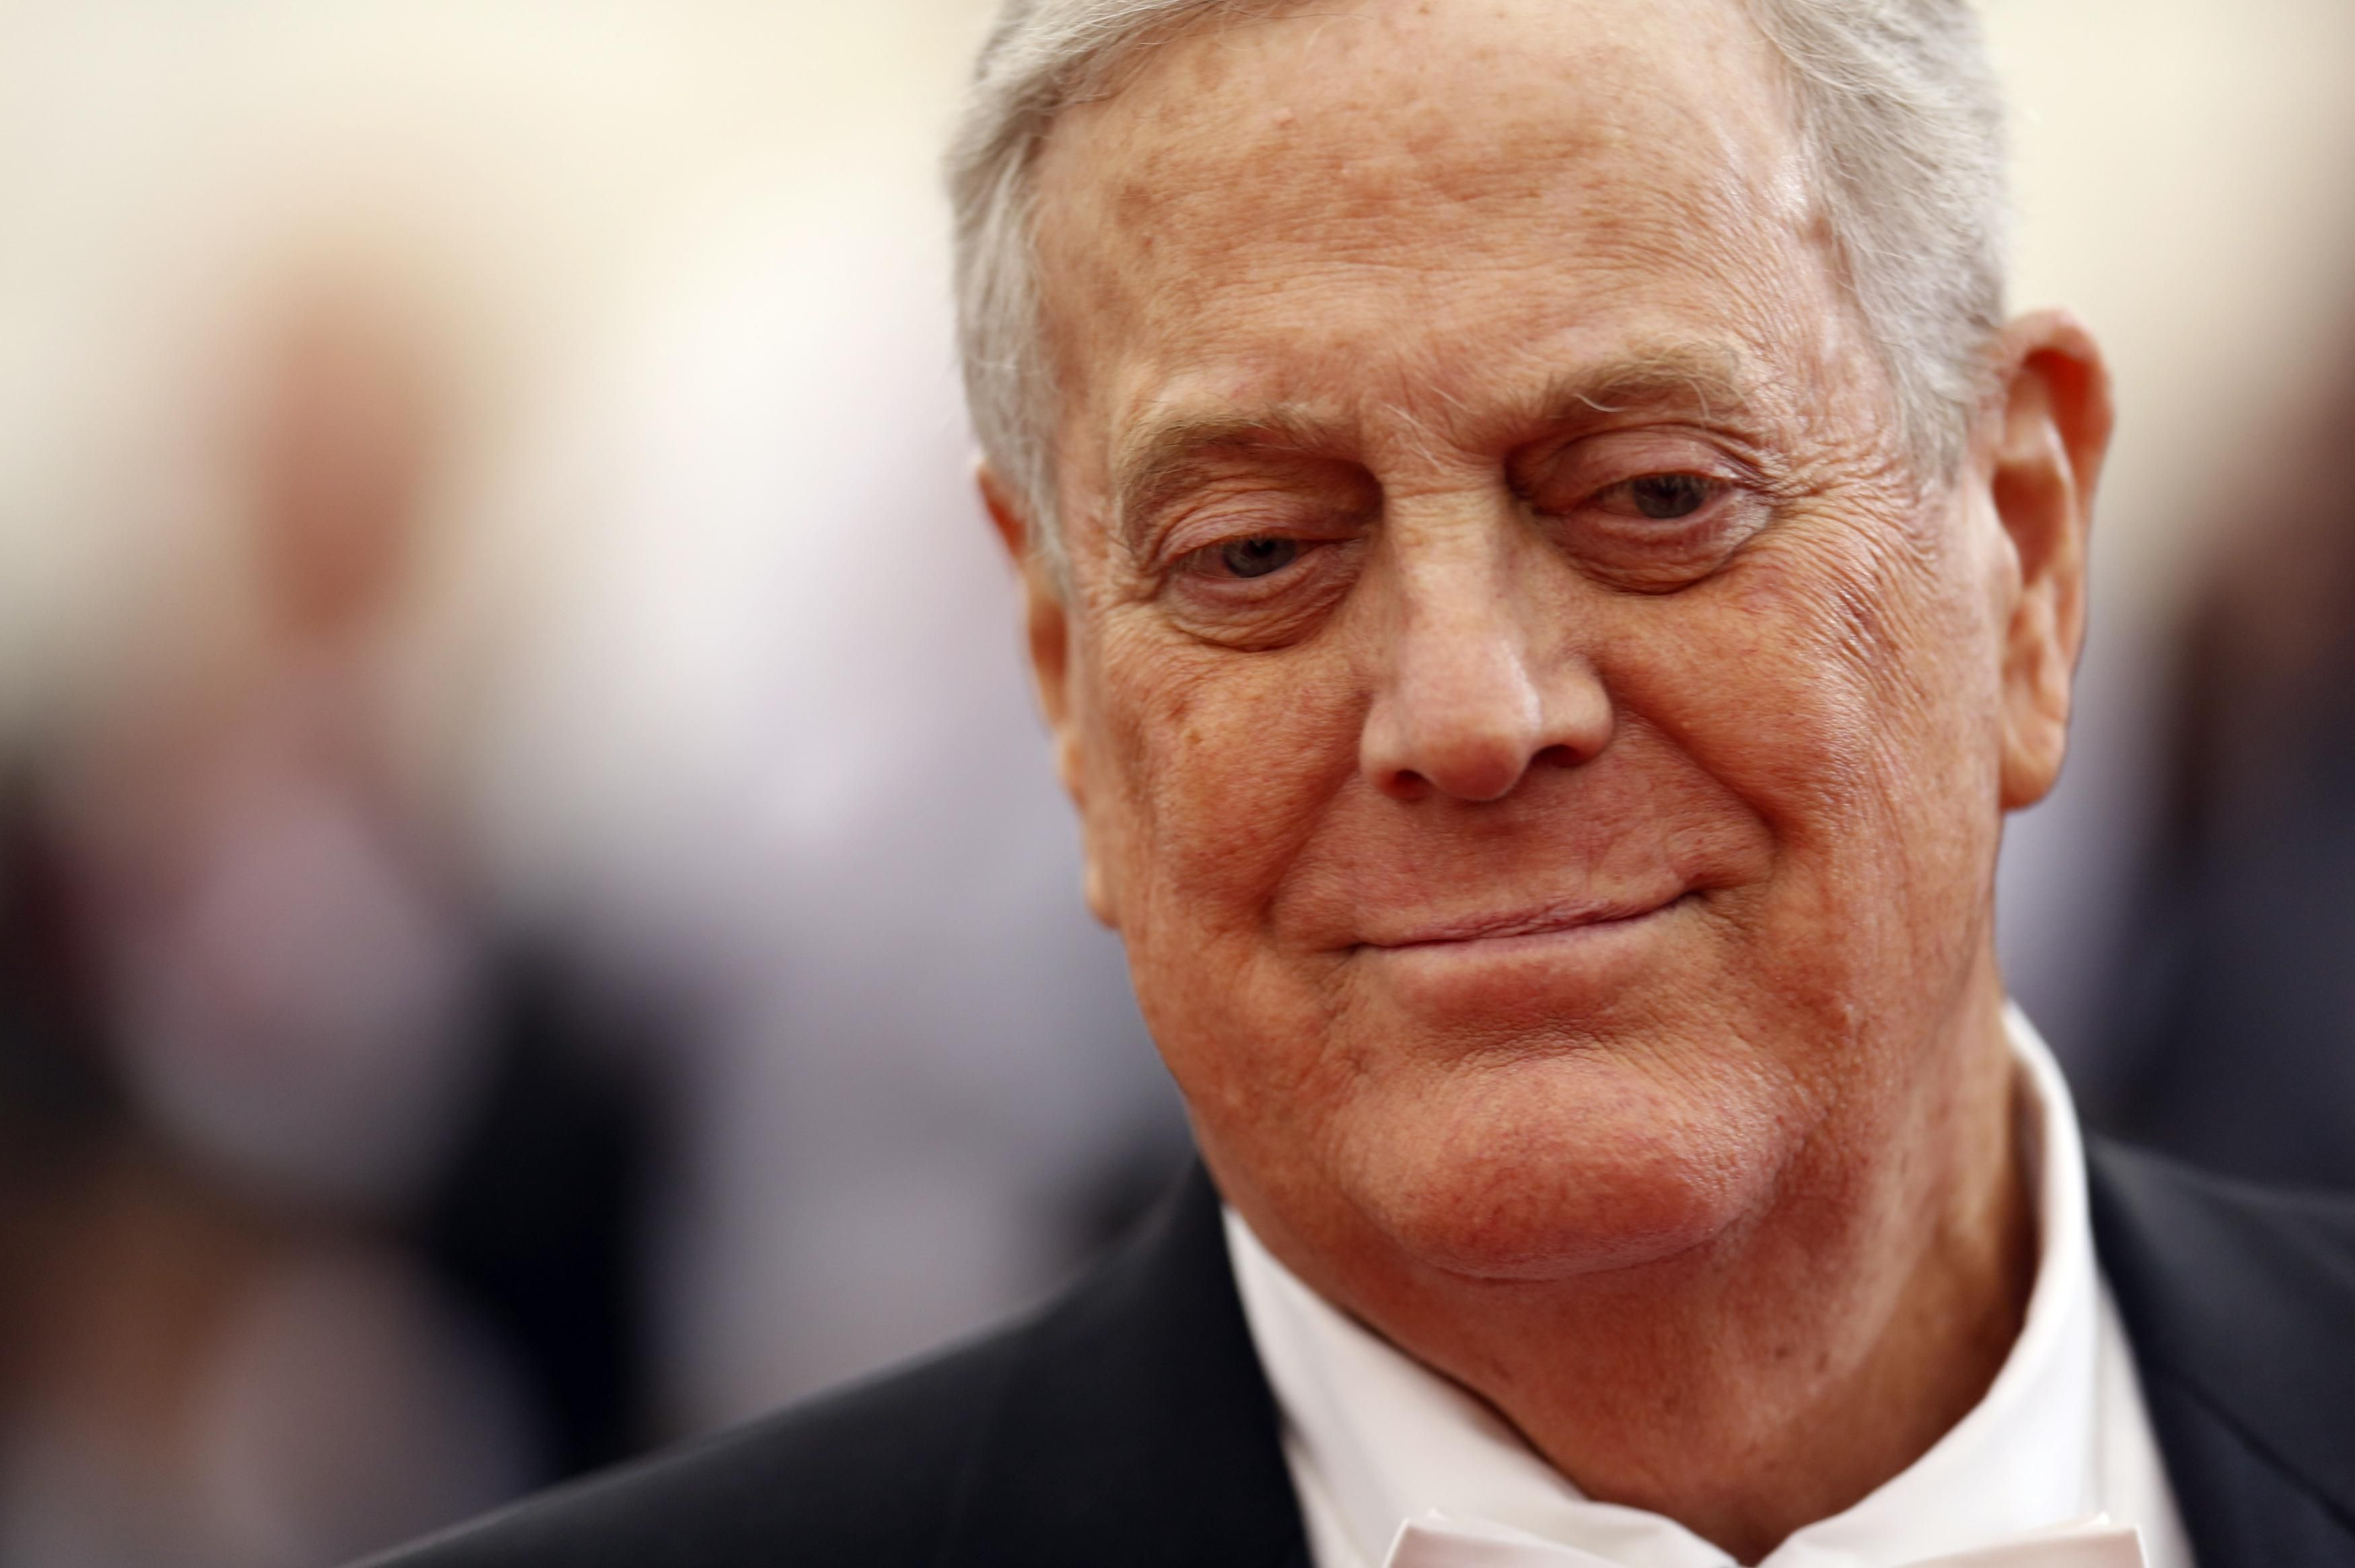 Koch Brothers' Father Helped Build Nazi Oil Refinery, Book Says